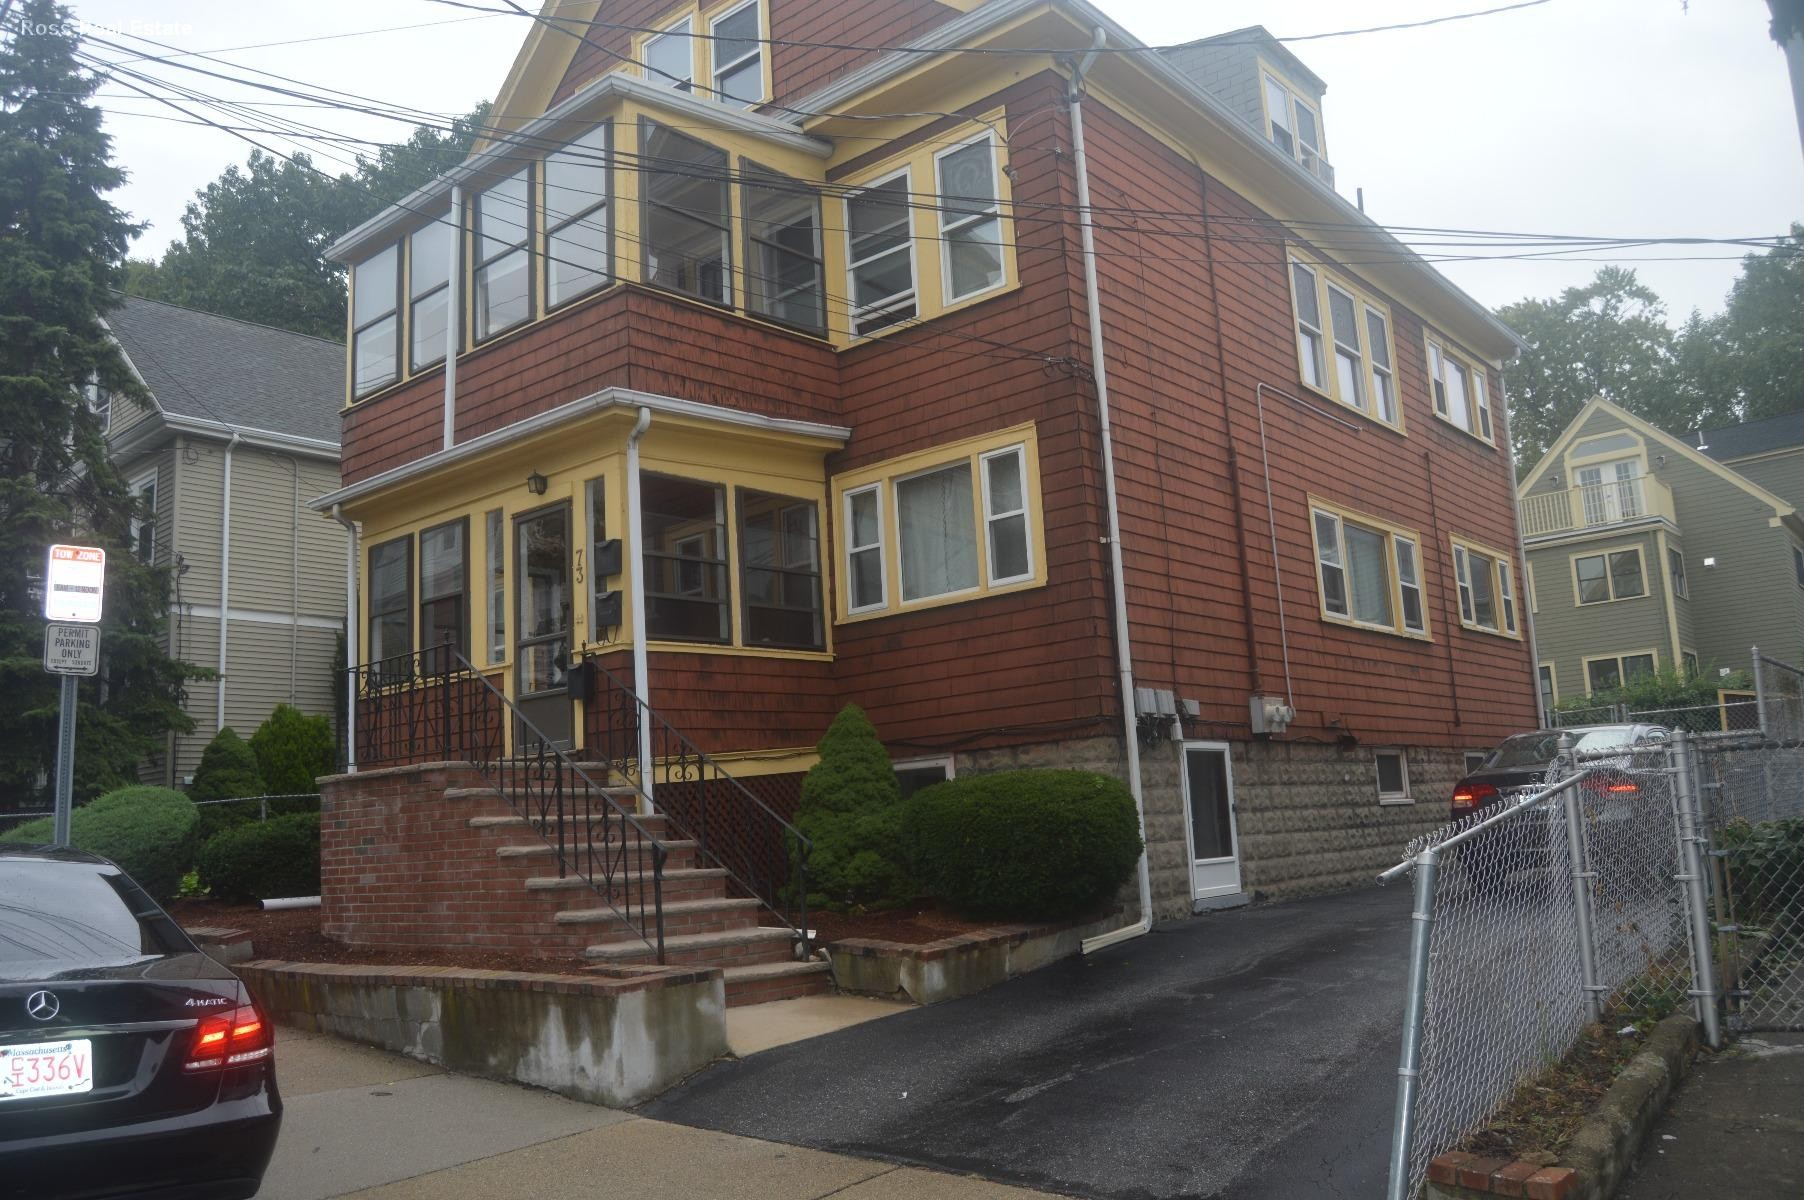 Dimick st 1 somerville ma 02143 1 bedroom apartment for rent padmapper for One bedroom apartments somerville ma